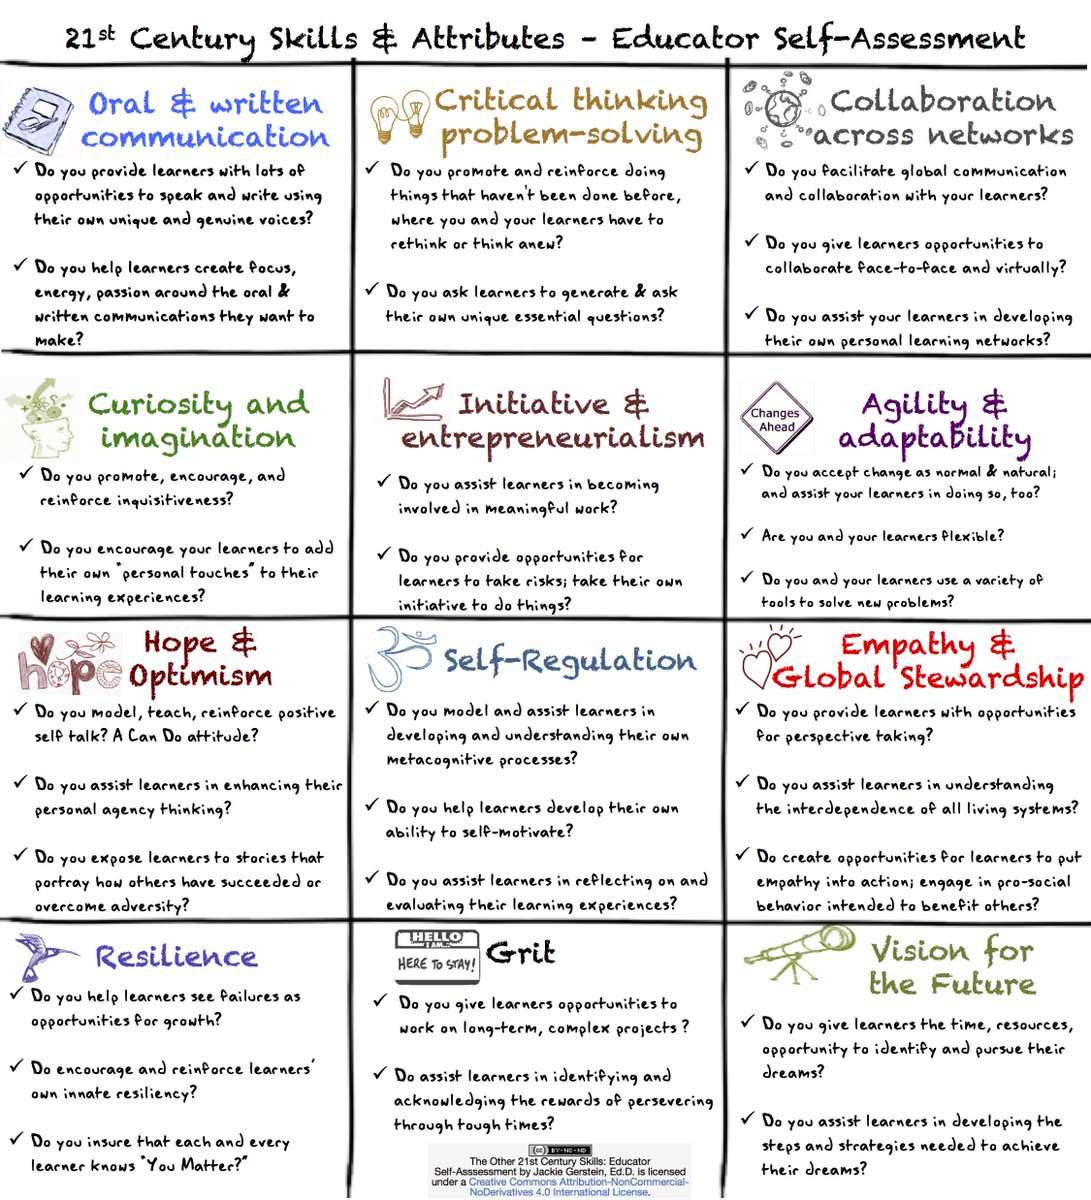 New: The Other 21st Century Skills: Educator Self-Assessment http://t.co/lI1f1nkUfi #edchat #sel http://t.co/0NtWSvfdtQ